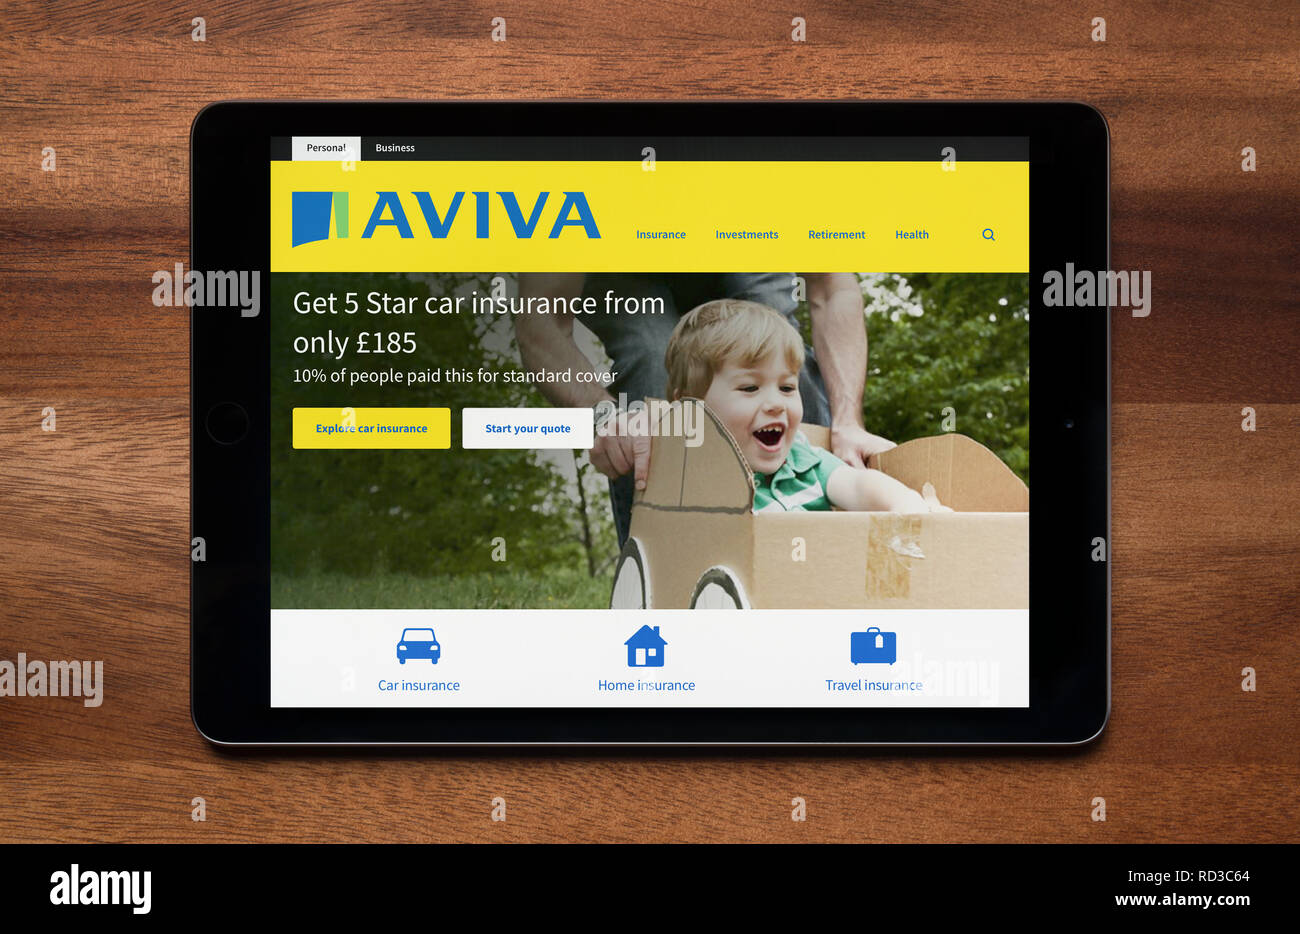 The website of Aviva insurance is seen on an iPad tablet, which is resting on a wooden table (Editorial use only). - Stock Image